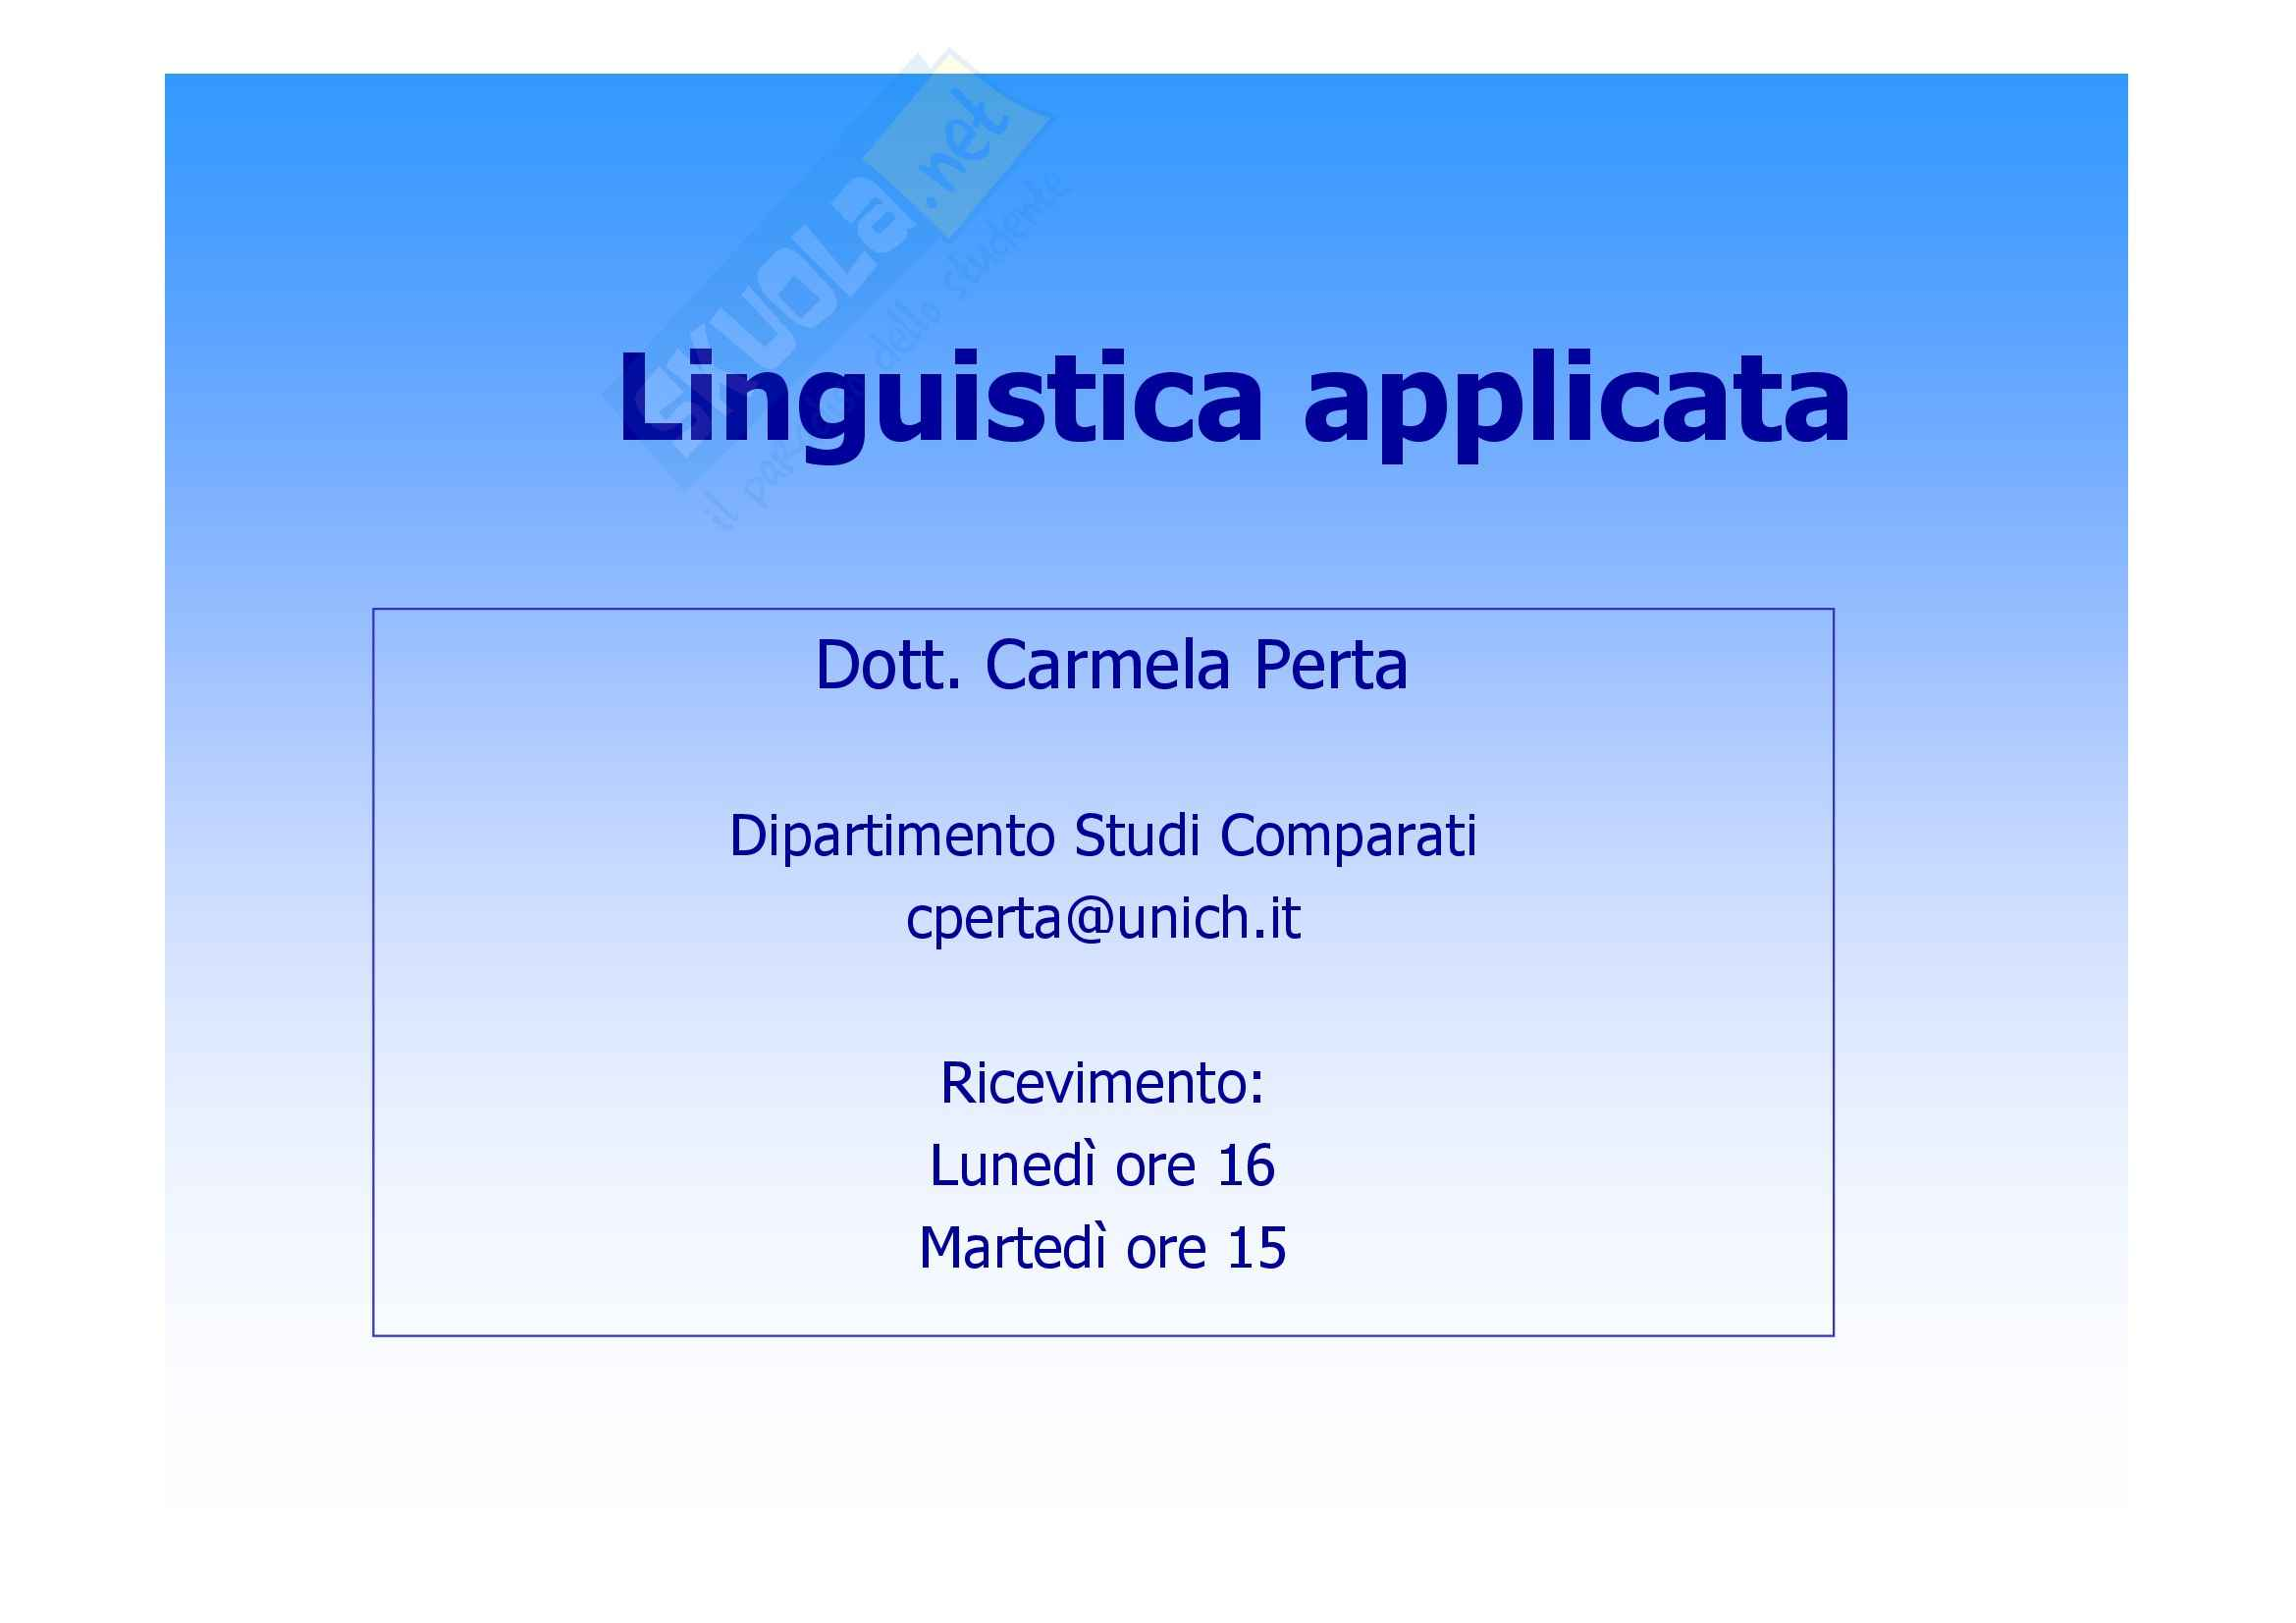 Linguistica applicata - Appunti